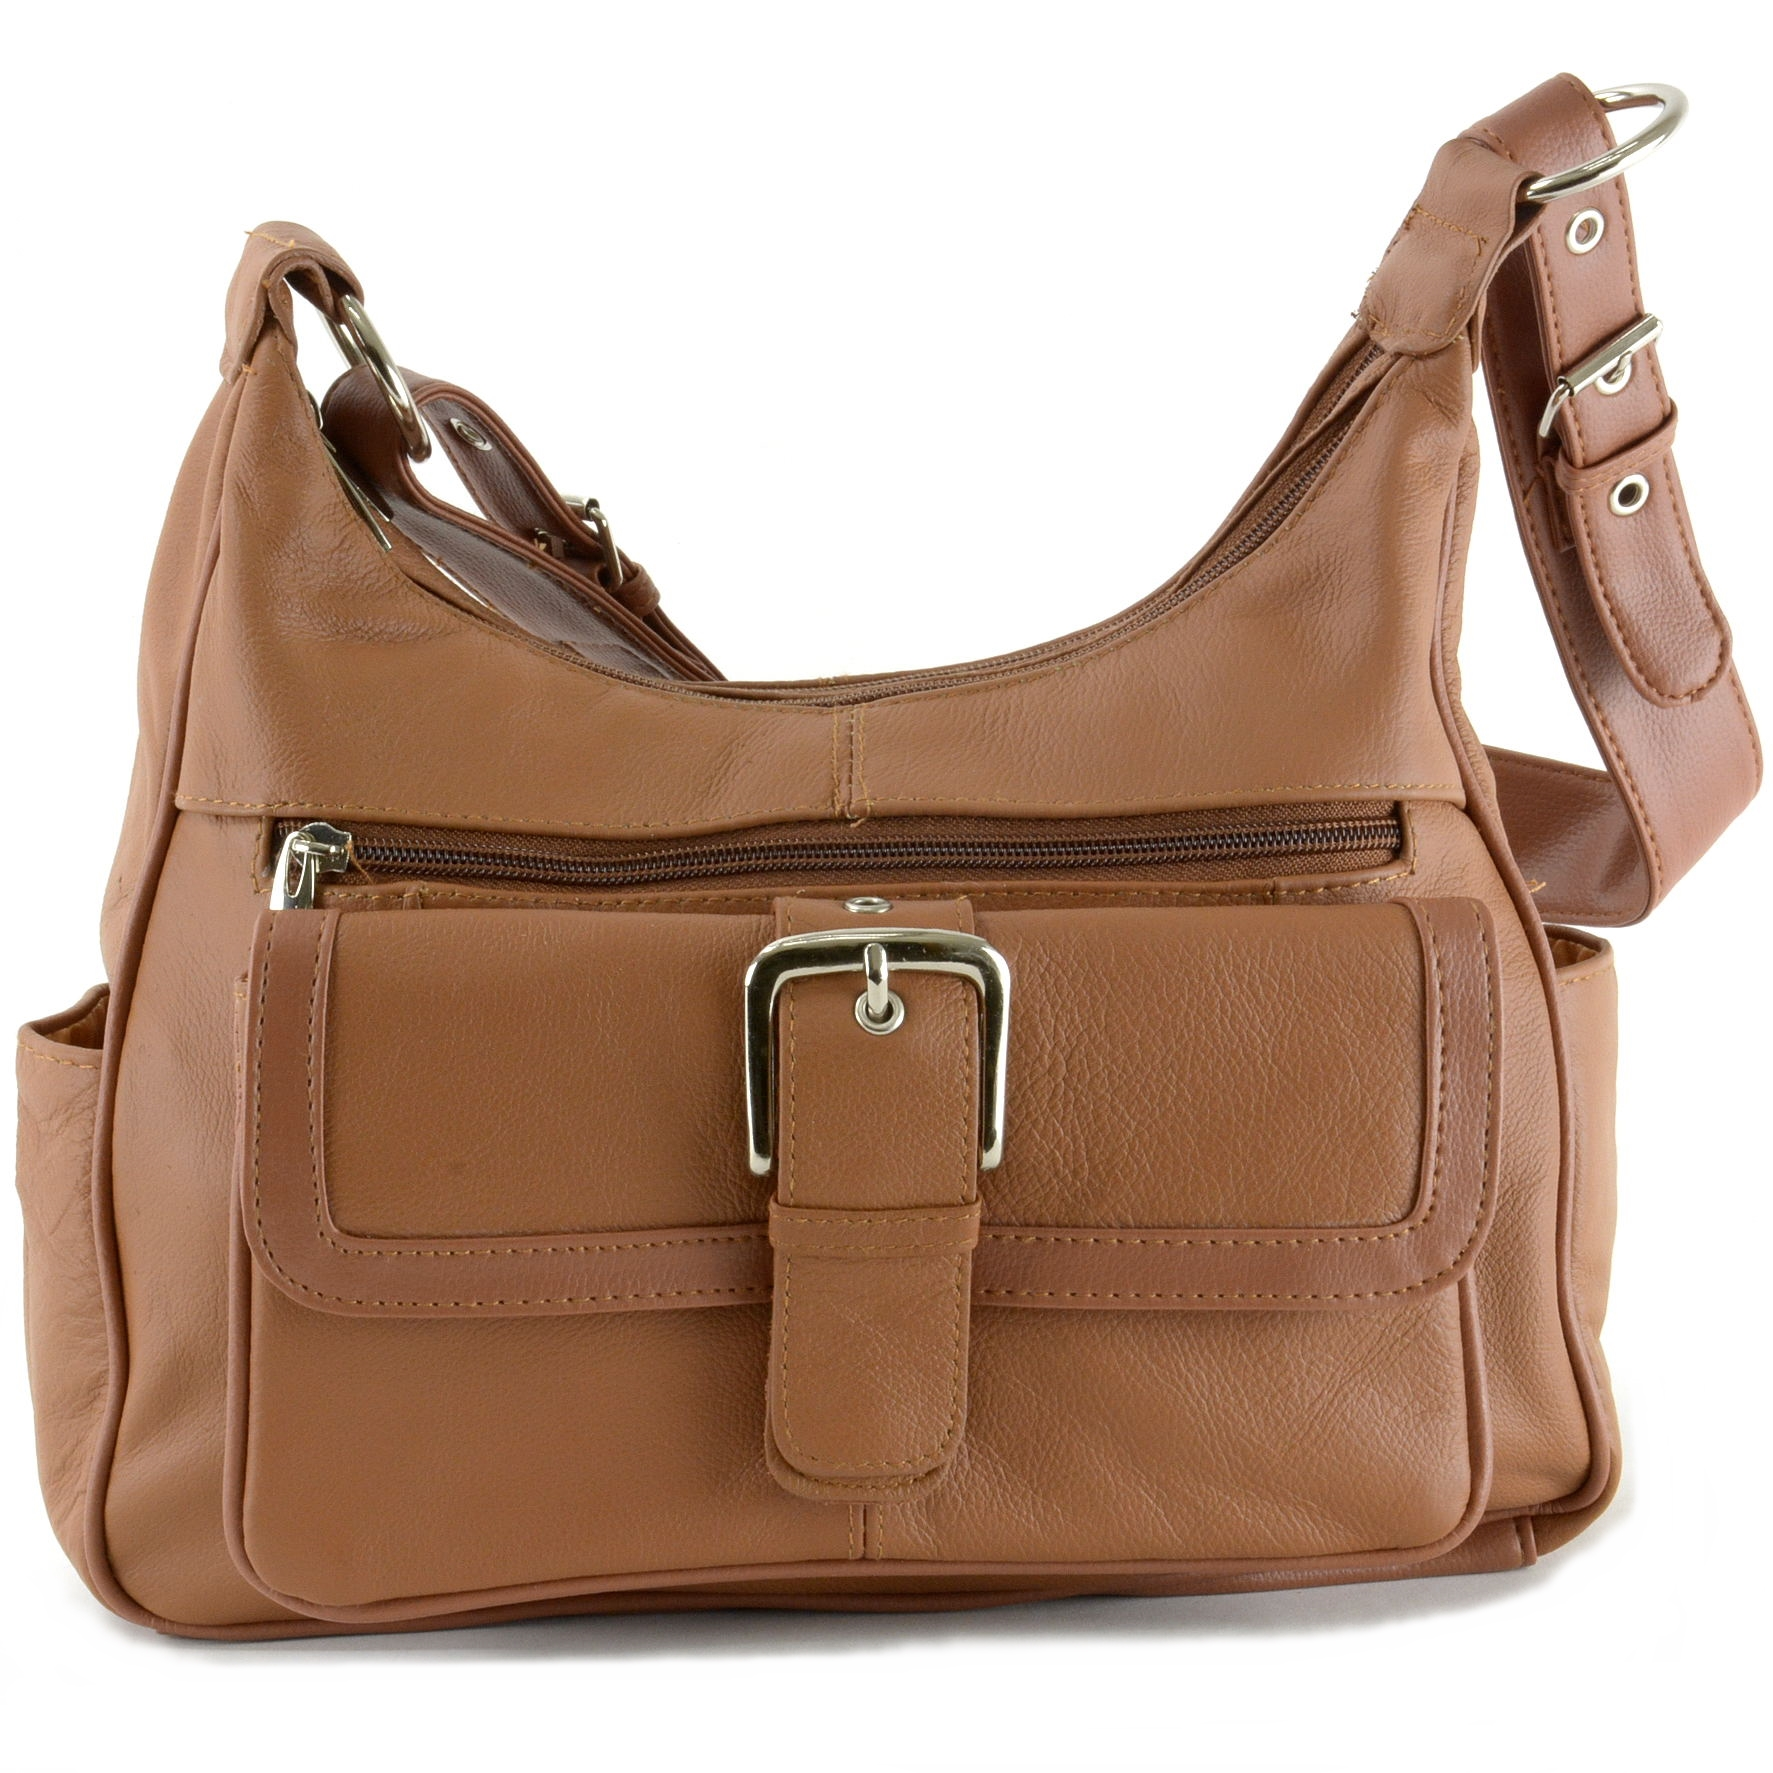 Women's Leather Organizer Purse Multi Pocket Handbag Shoulder Bag ...